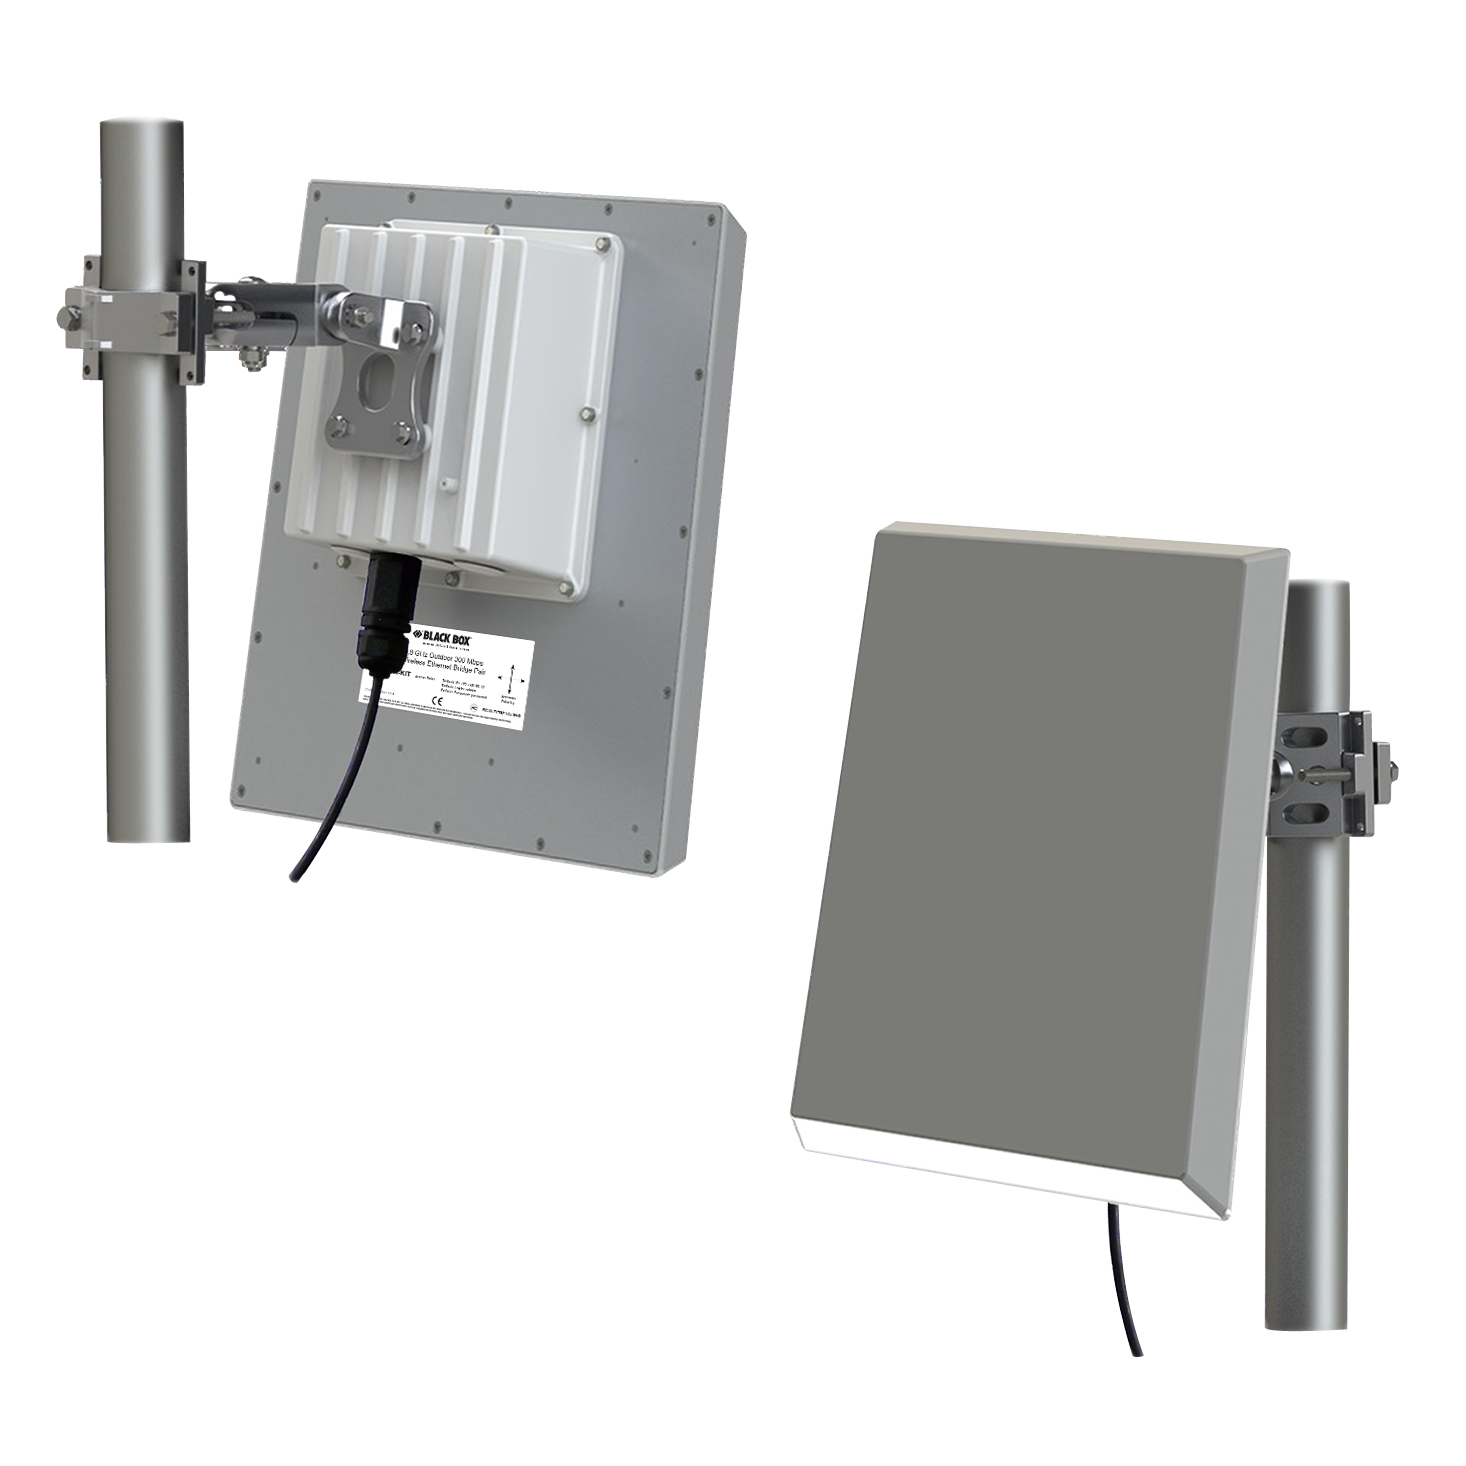 Outdoor Wireless Ethernet Bridge Kit Black Box Electrical Boxes Use Rubber Gaskets To Seal Out Weather Lwe200a